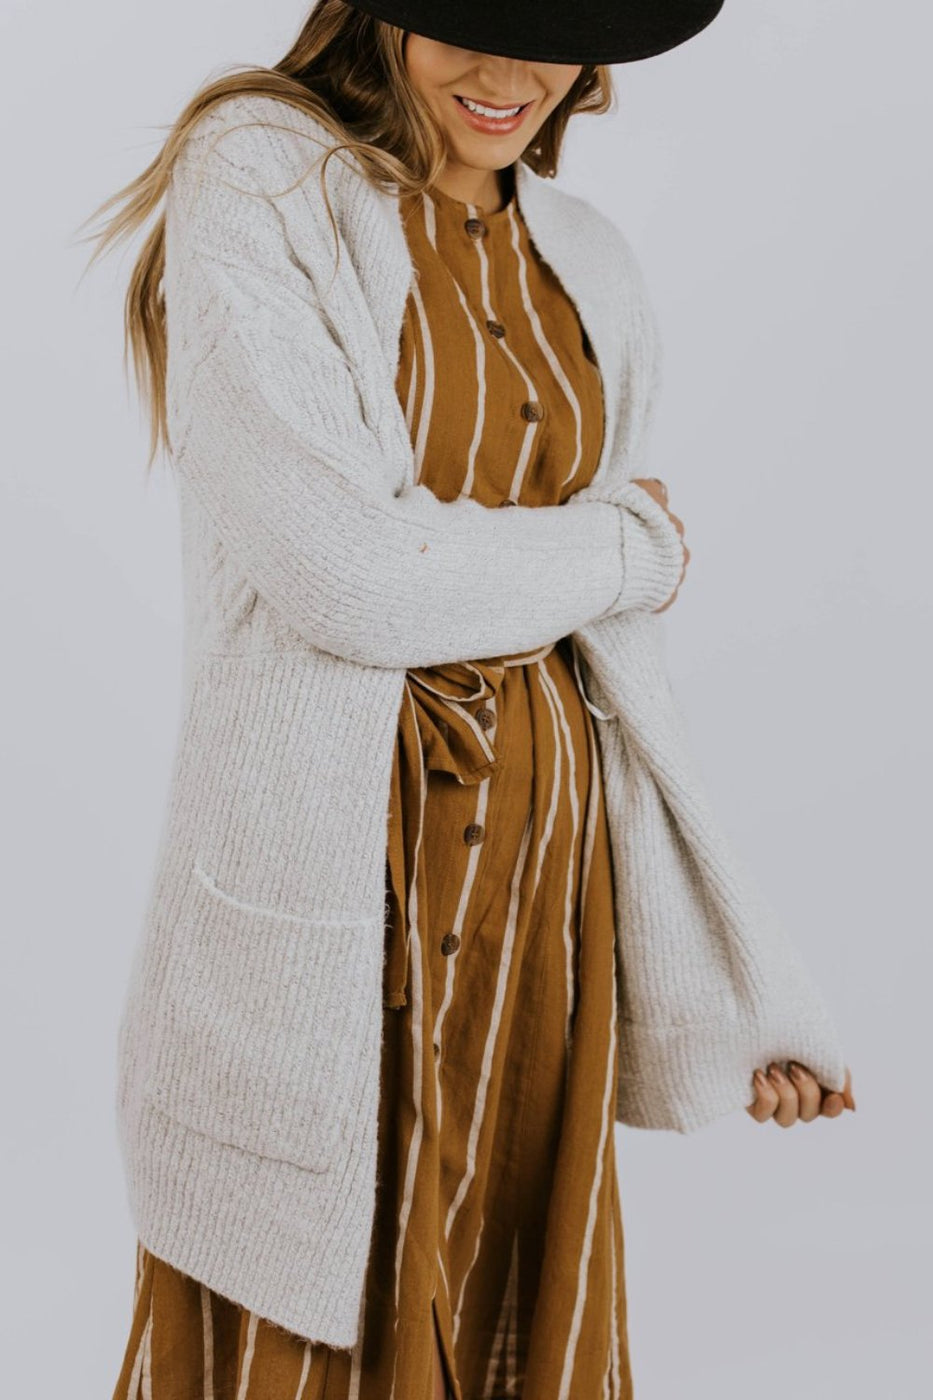 Ivory Detail Cardigan Sweater Outfit Ideas | ROOLEE